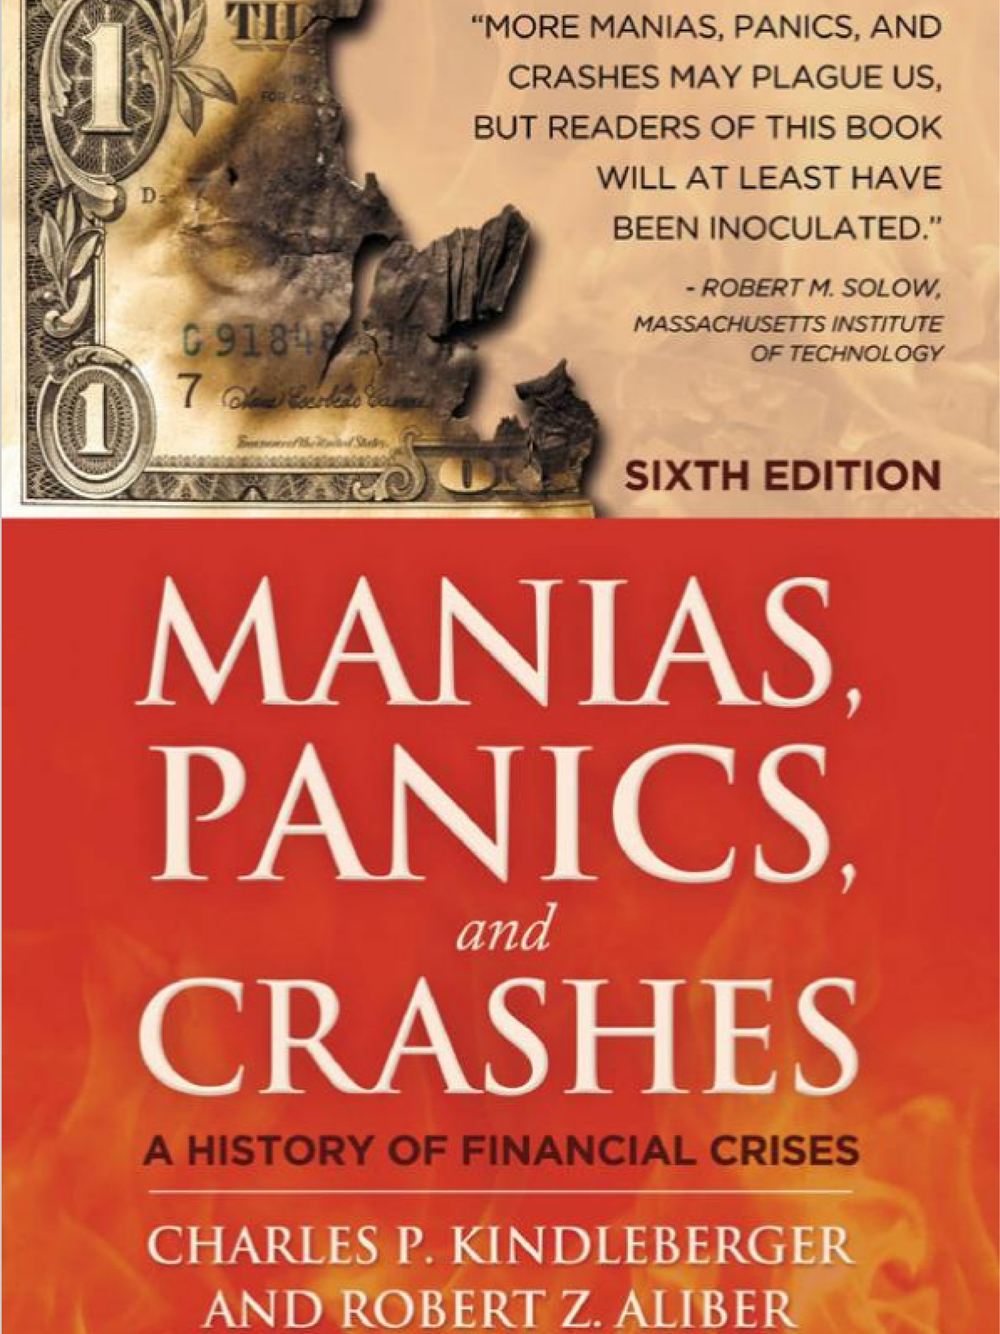 Manias, Panics, and Crashes: A History of Financial Crises Charles P. Kindleberger 1978